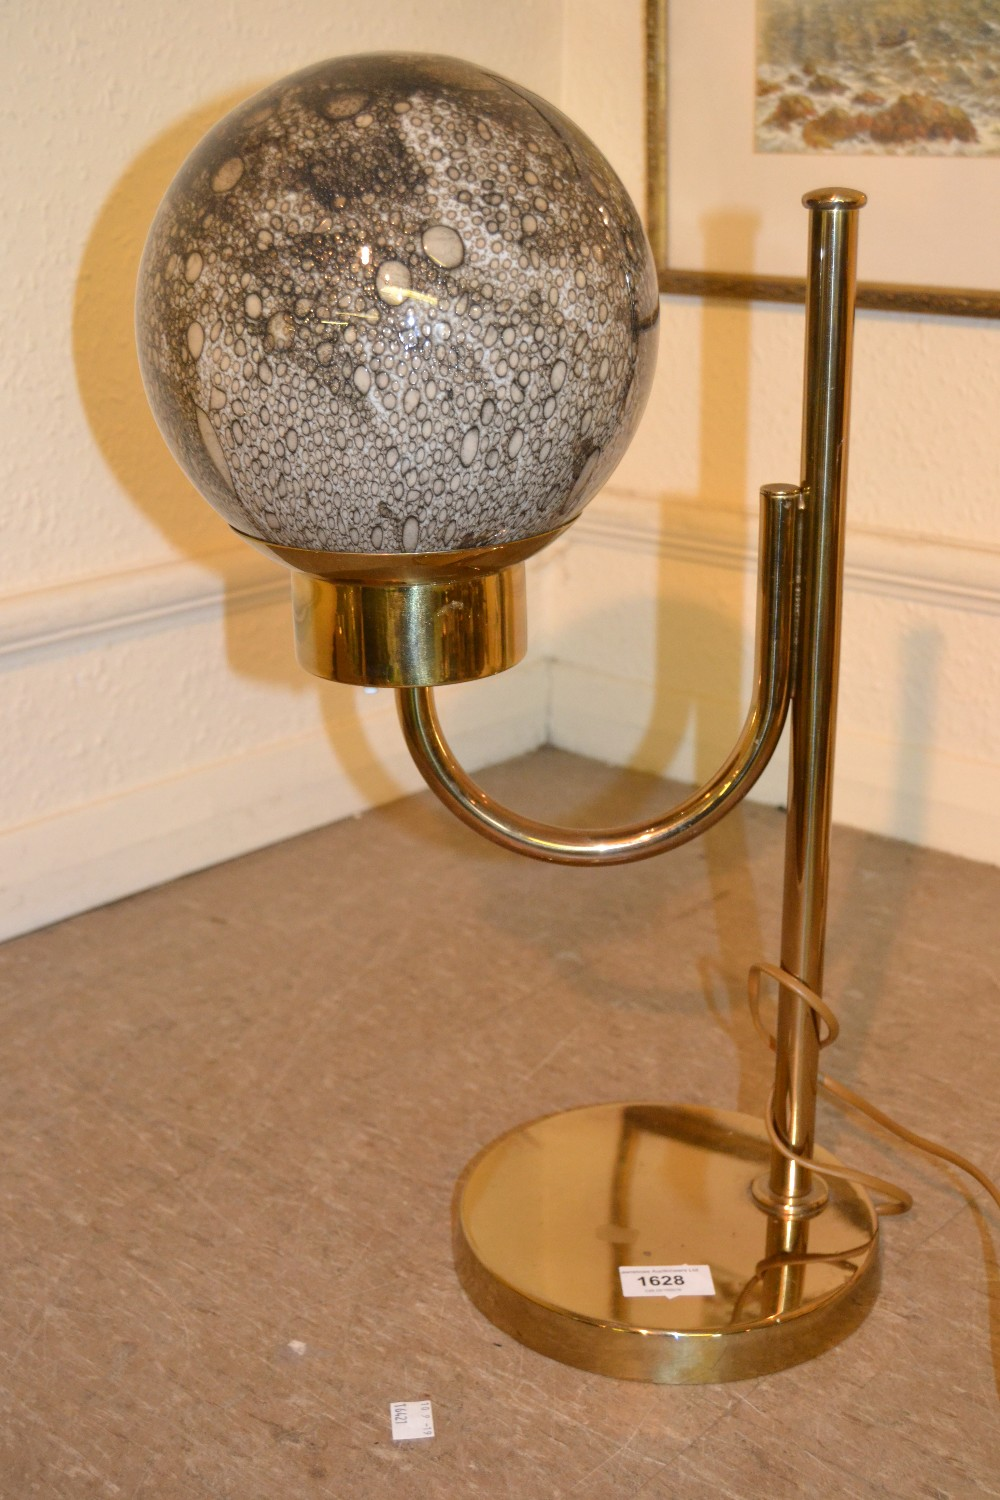 Lot 1628 - Swedish Bergboms model B-090 polished brass table lamp with bubble glass spherical shade